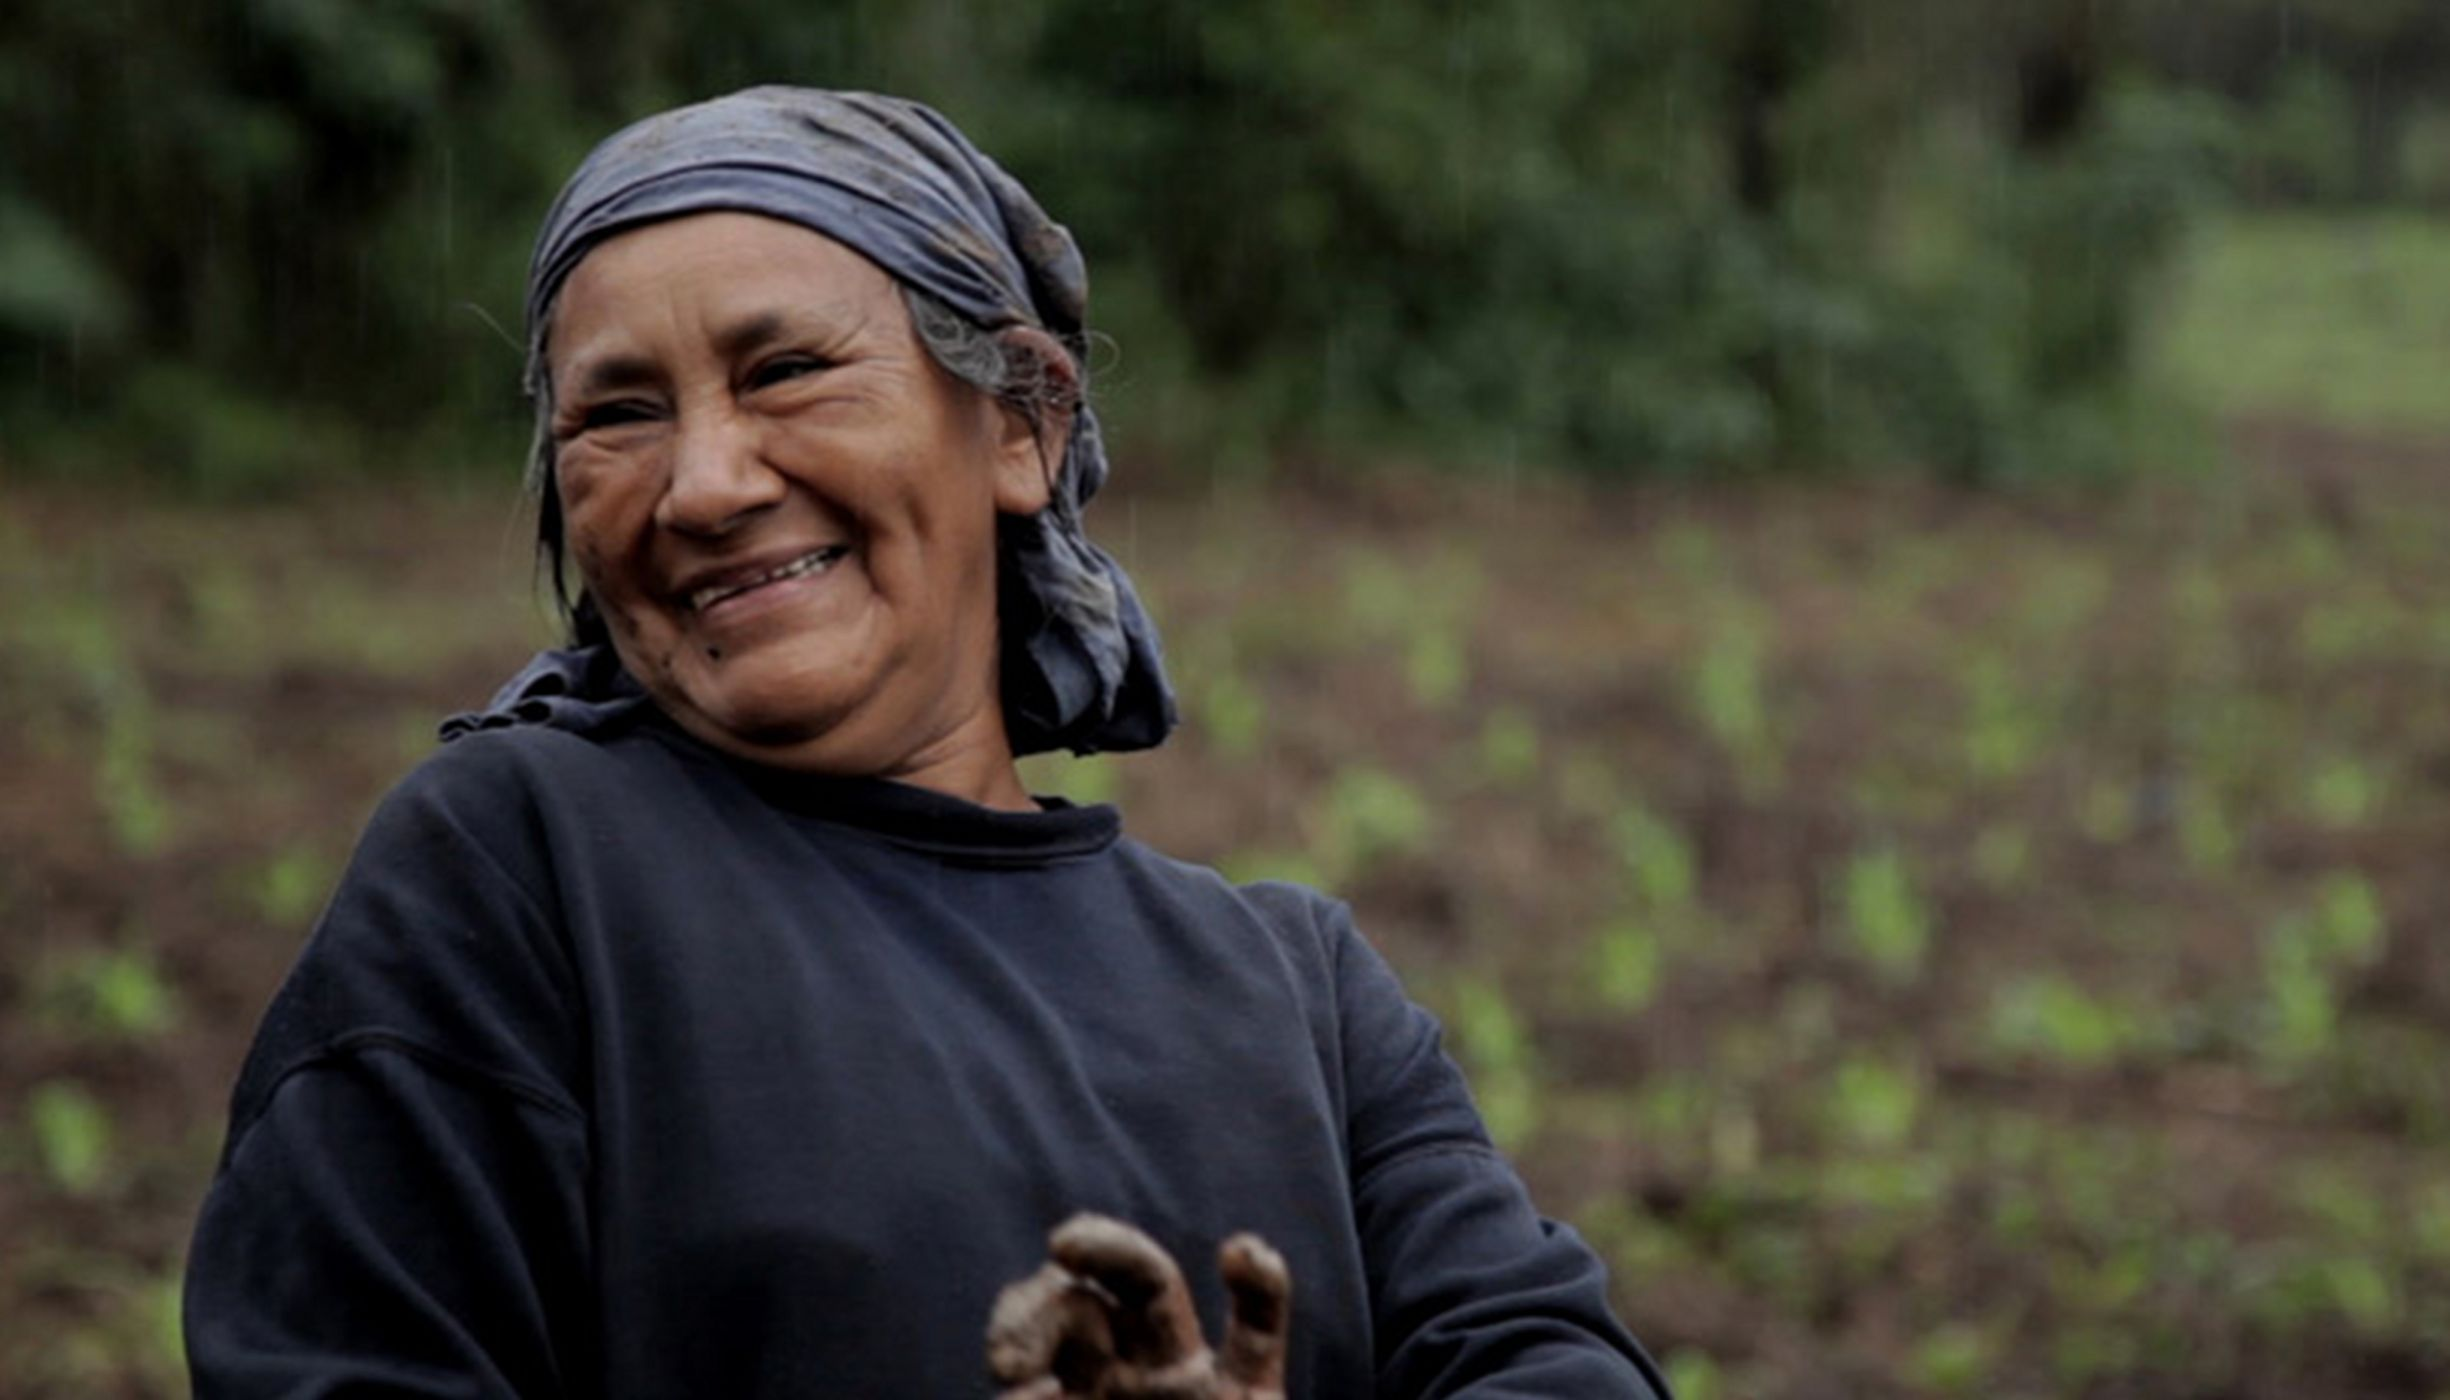 In communities like Alta Gracia in México, the incorporation of women is an opportunity to move forward on sustainable development and forestry conservation.